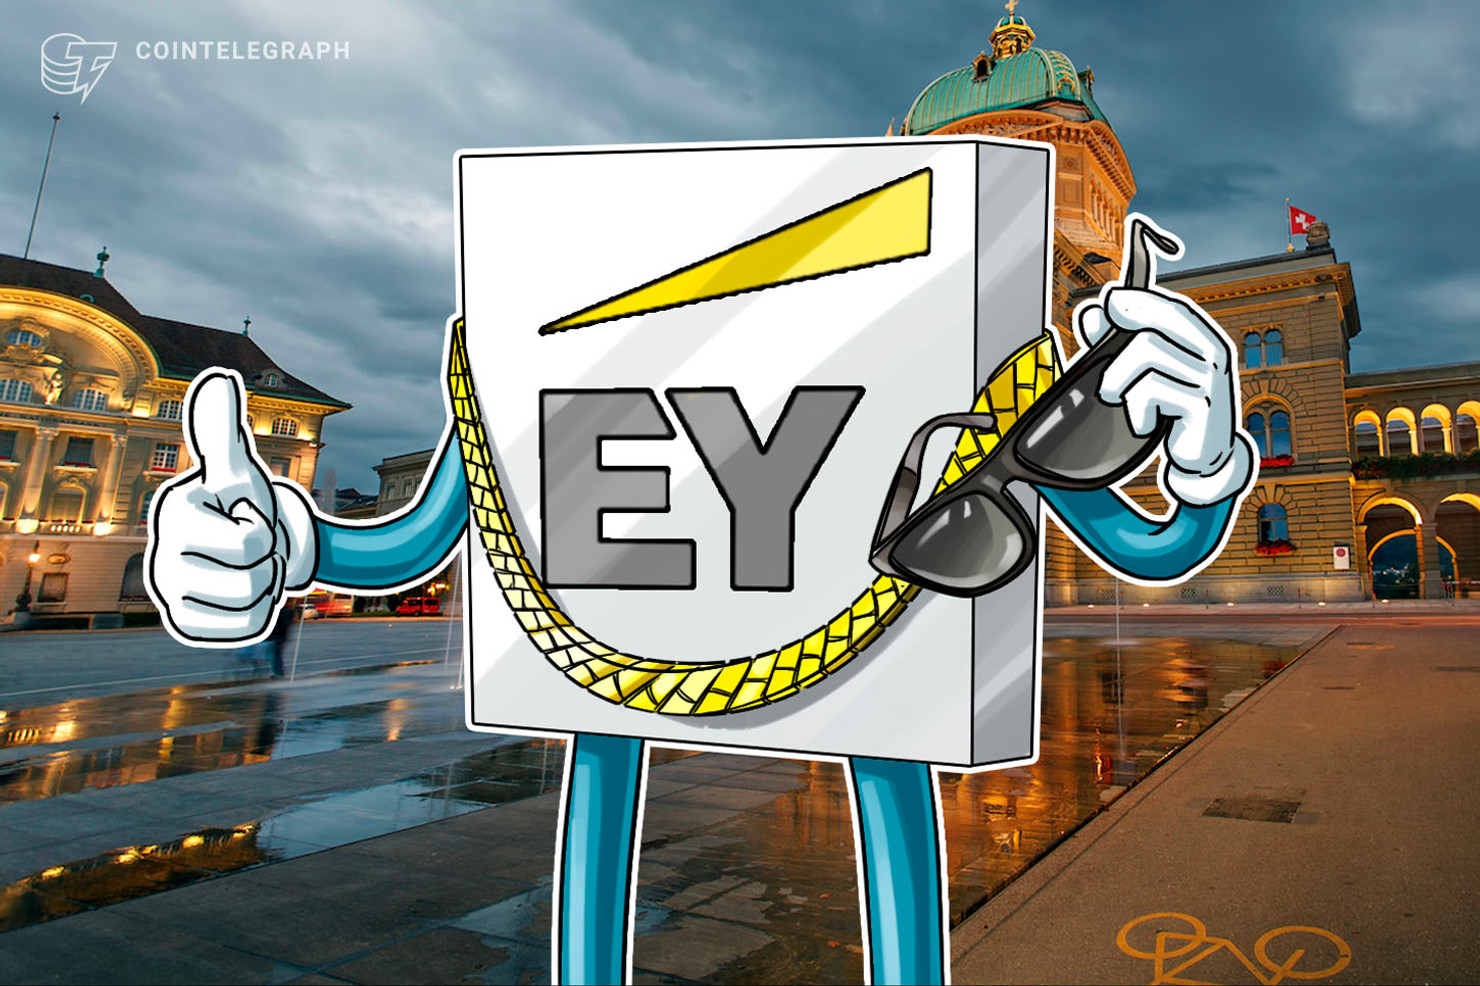 Major Auditing Firm Ernst & Young Releases Updates to Two Blockchain-Related Products